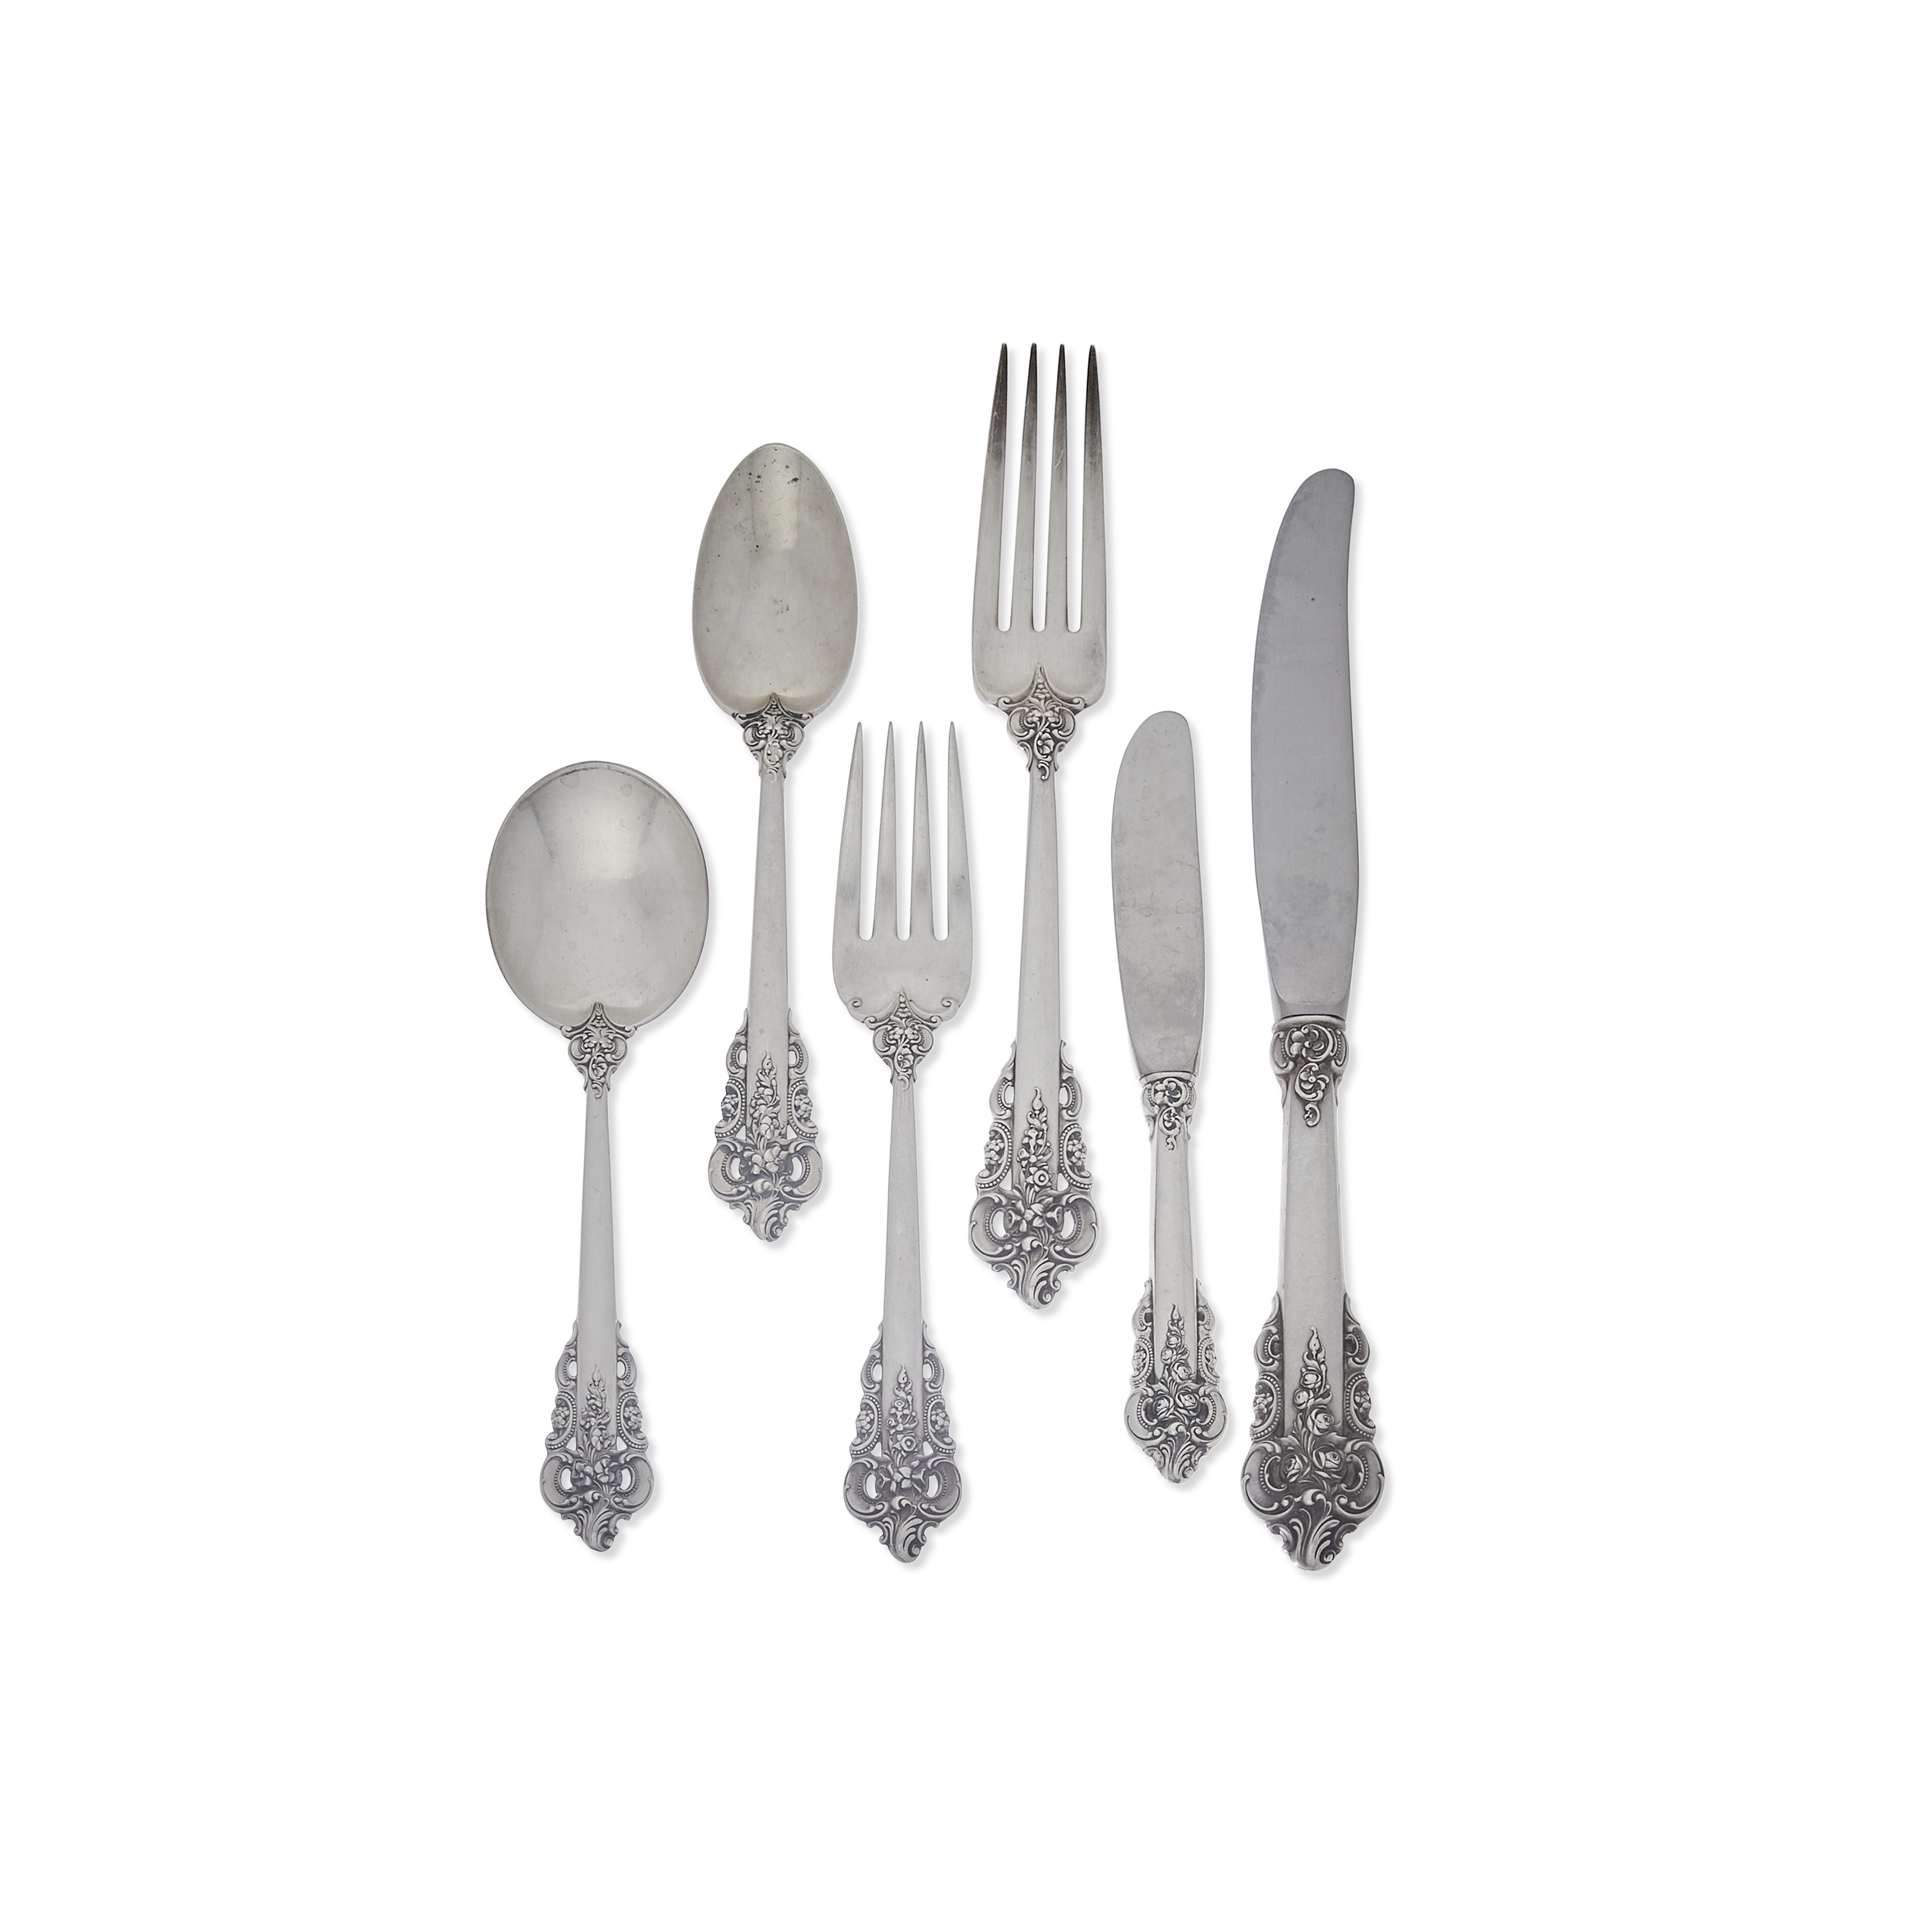 An American sterling silver flatware service by Wallace Silversmiths, Wallingford, CT, 20th century